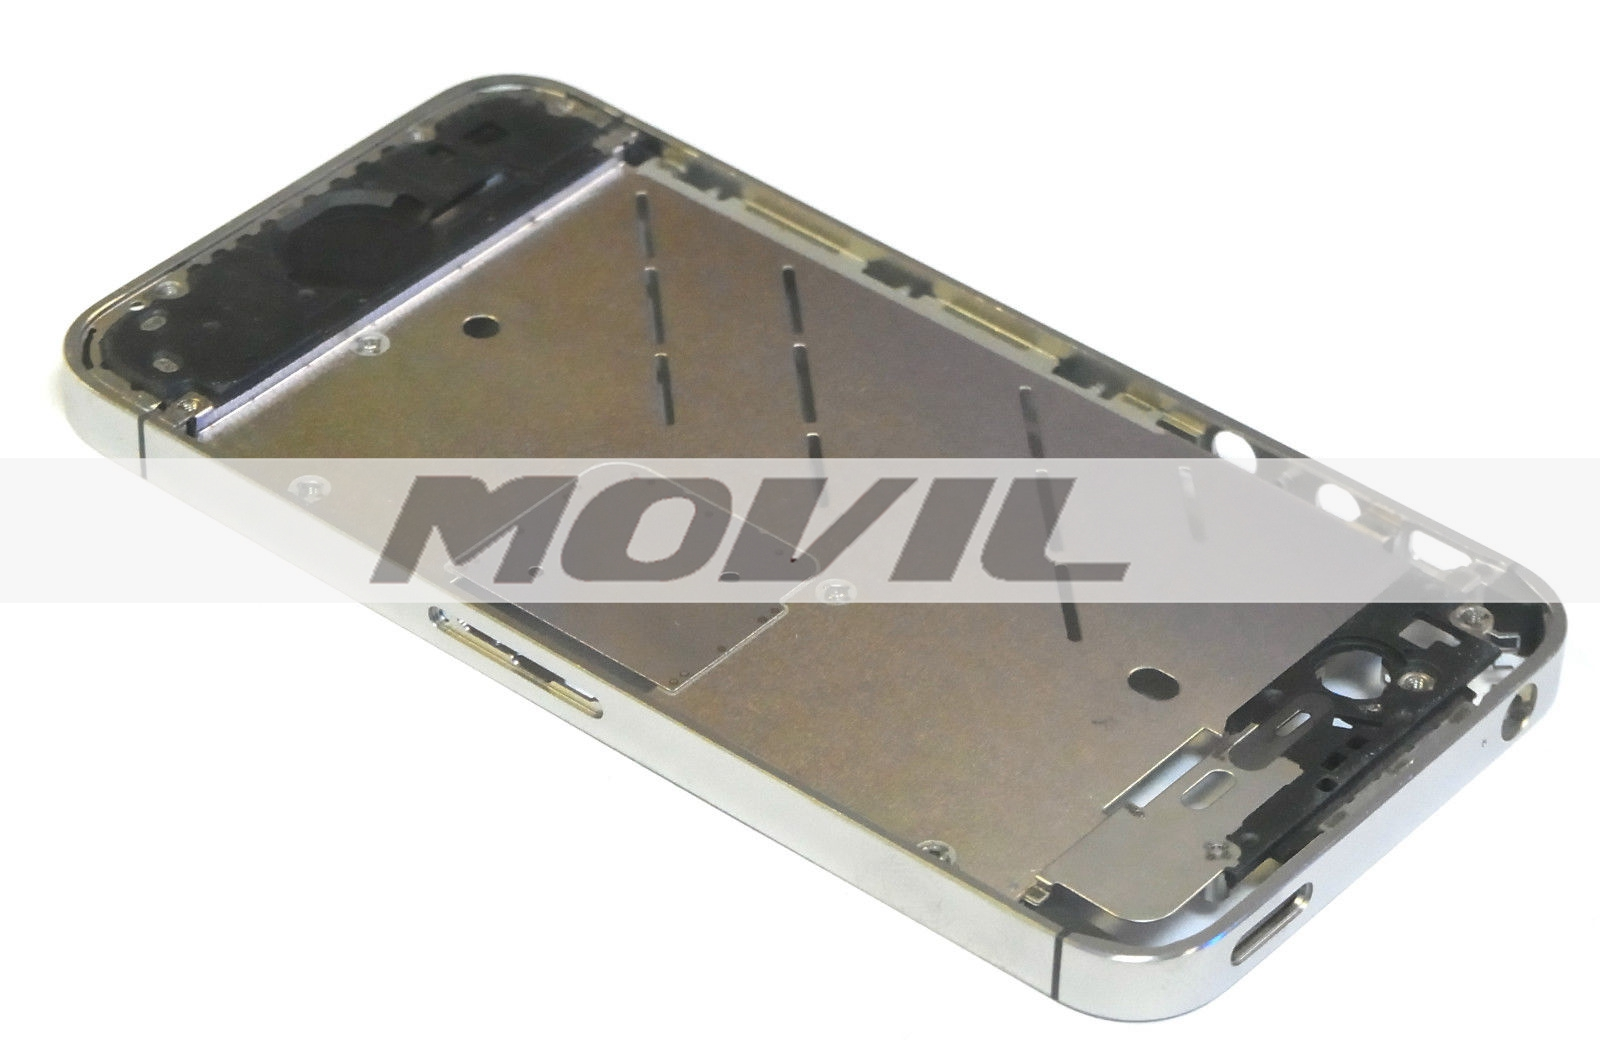 3g 3gs replacement parts - movil